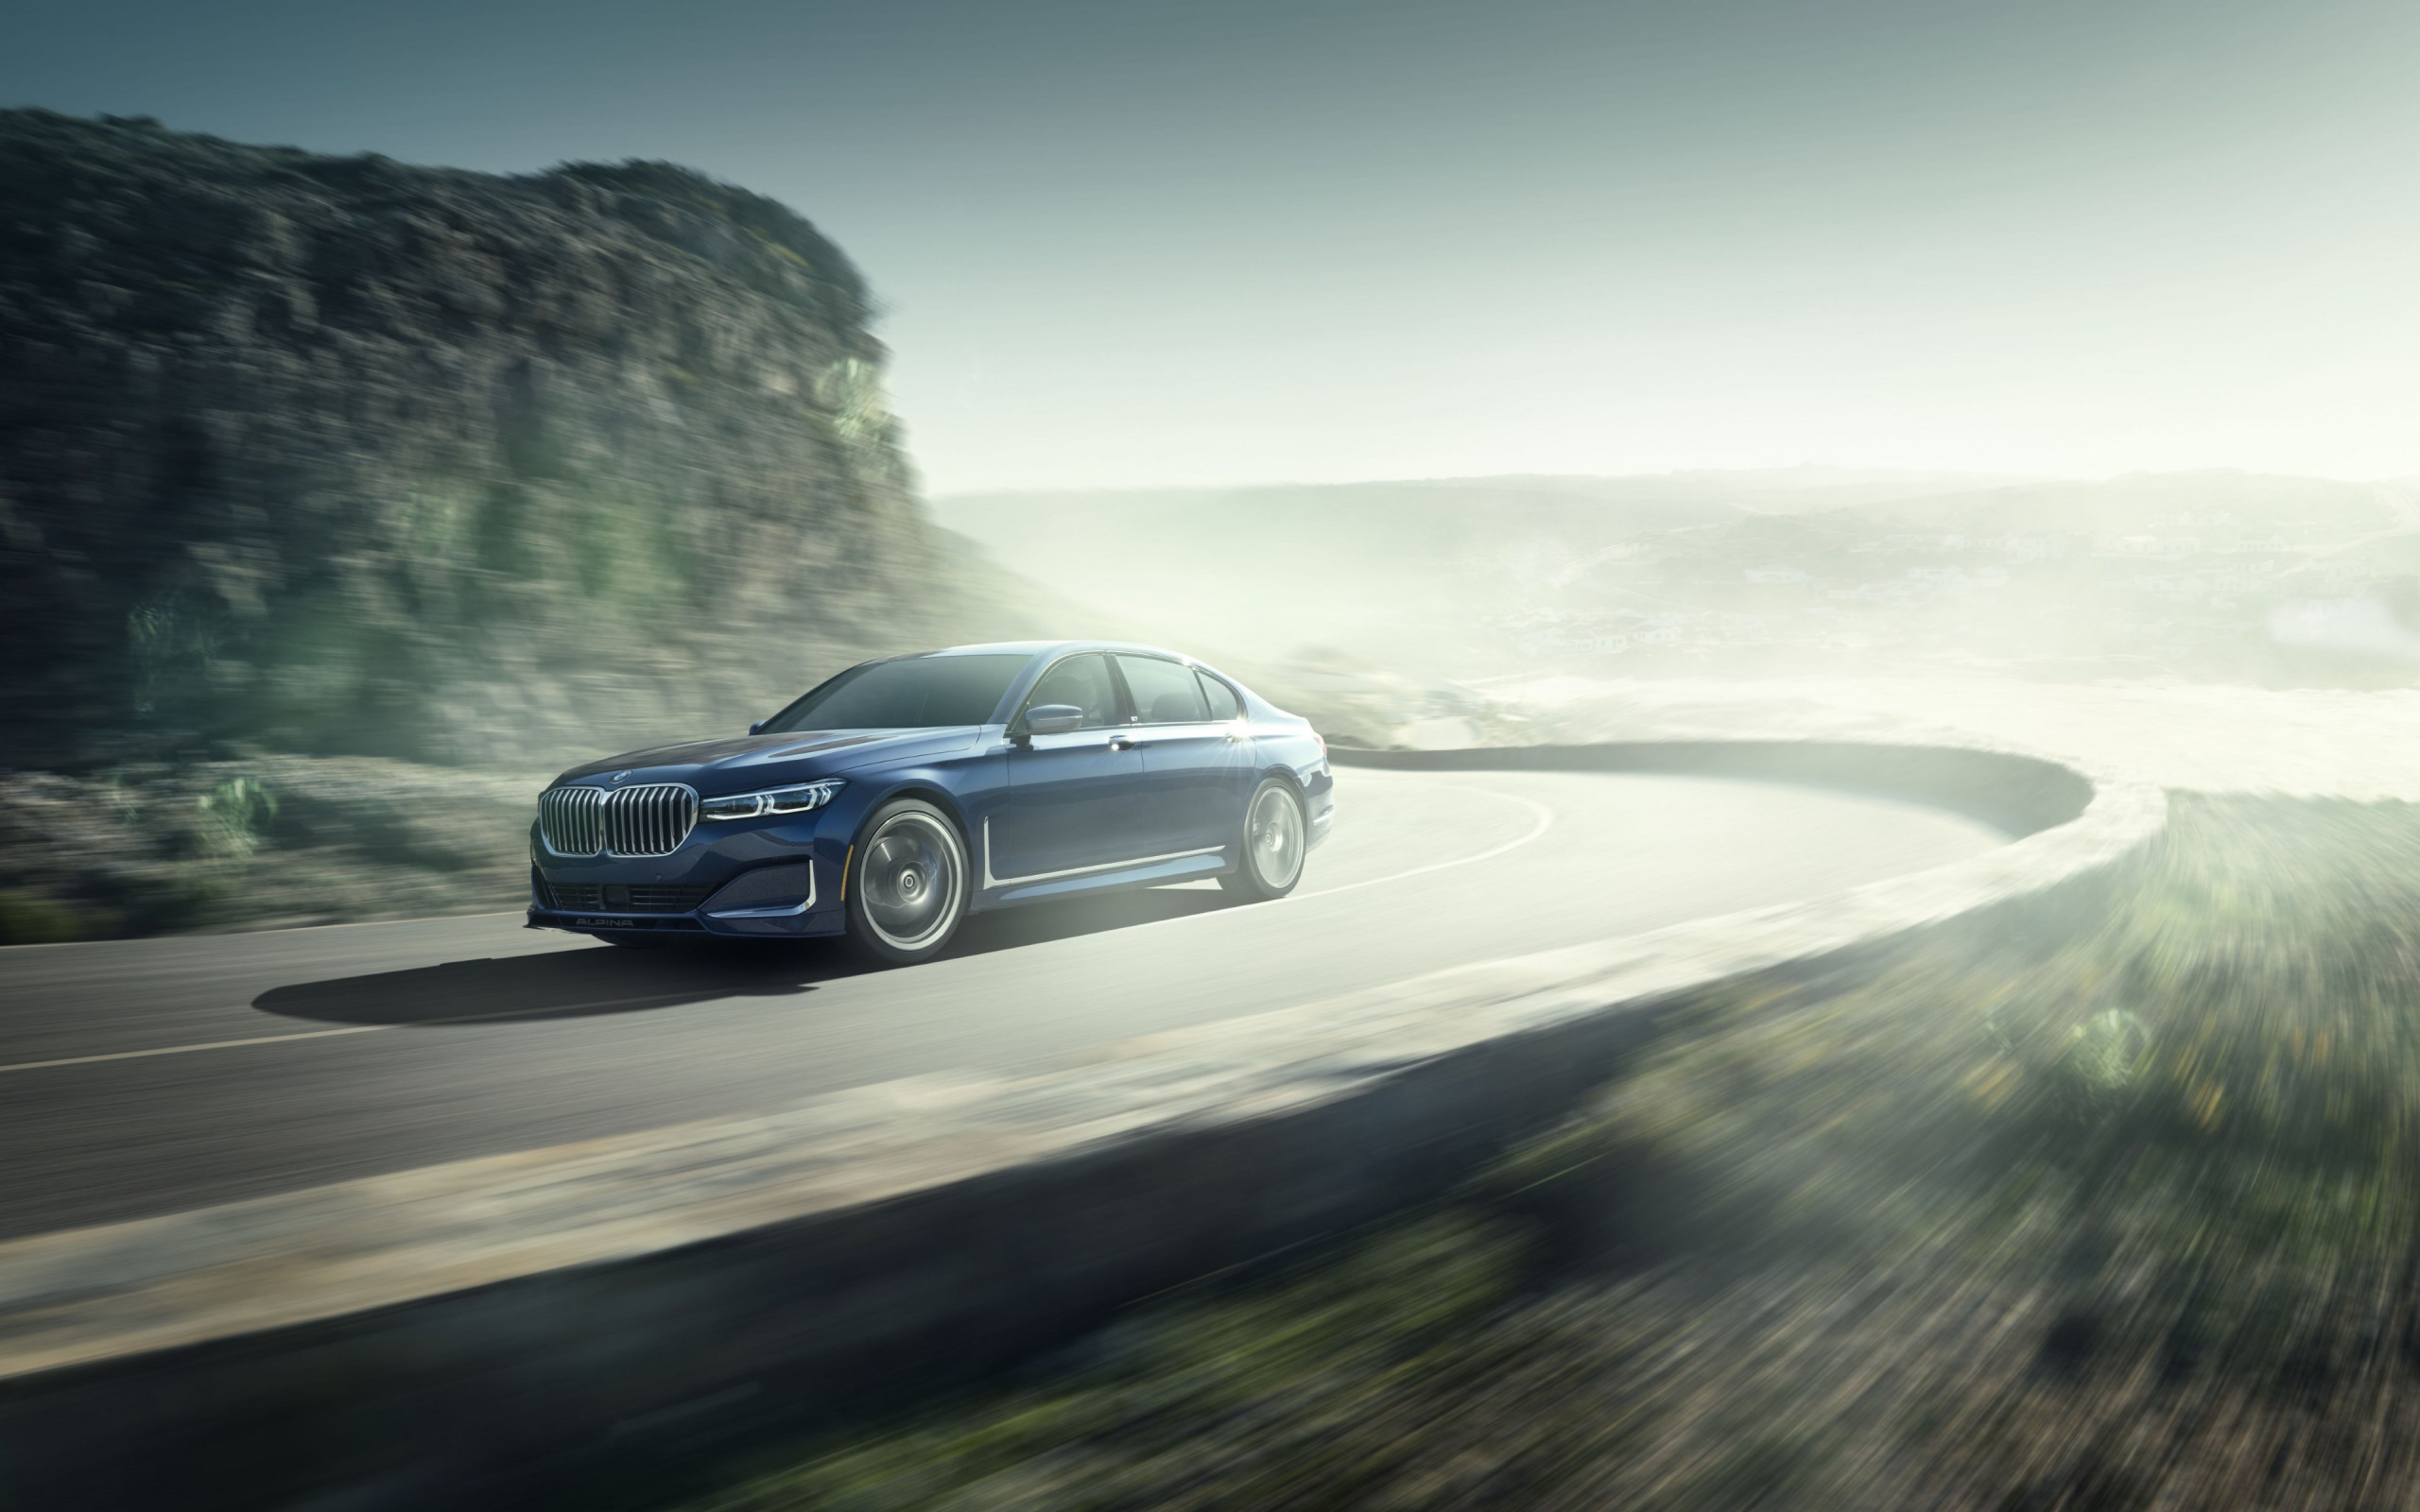 BMW Alpina B7 2019 wallpaper 2560x1600